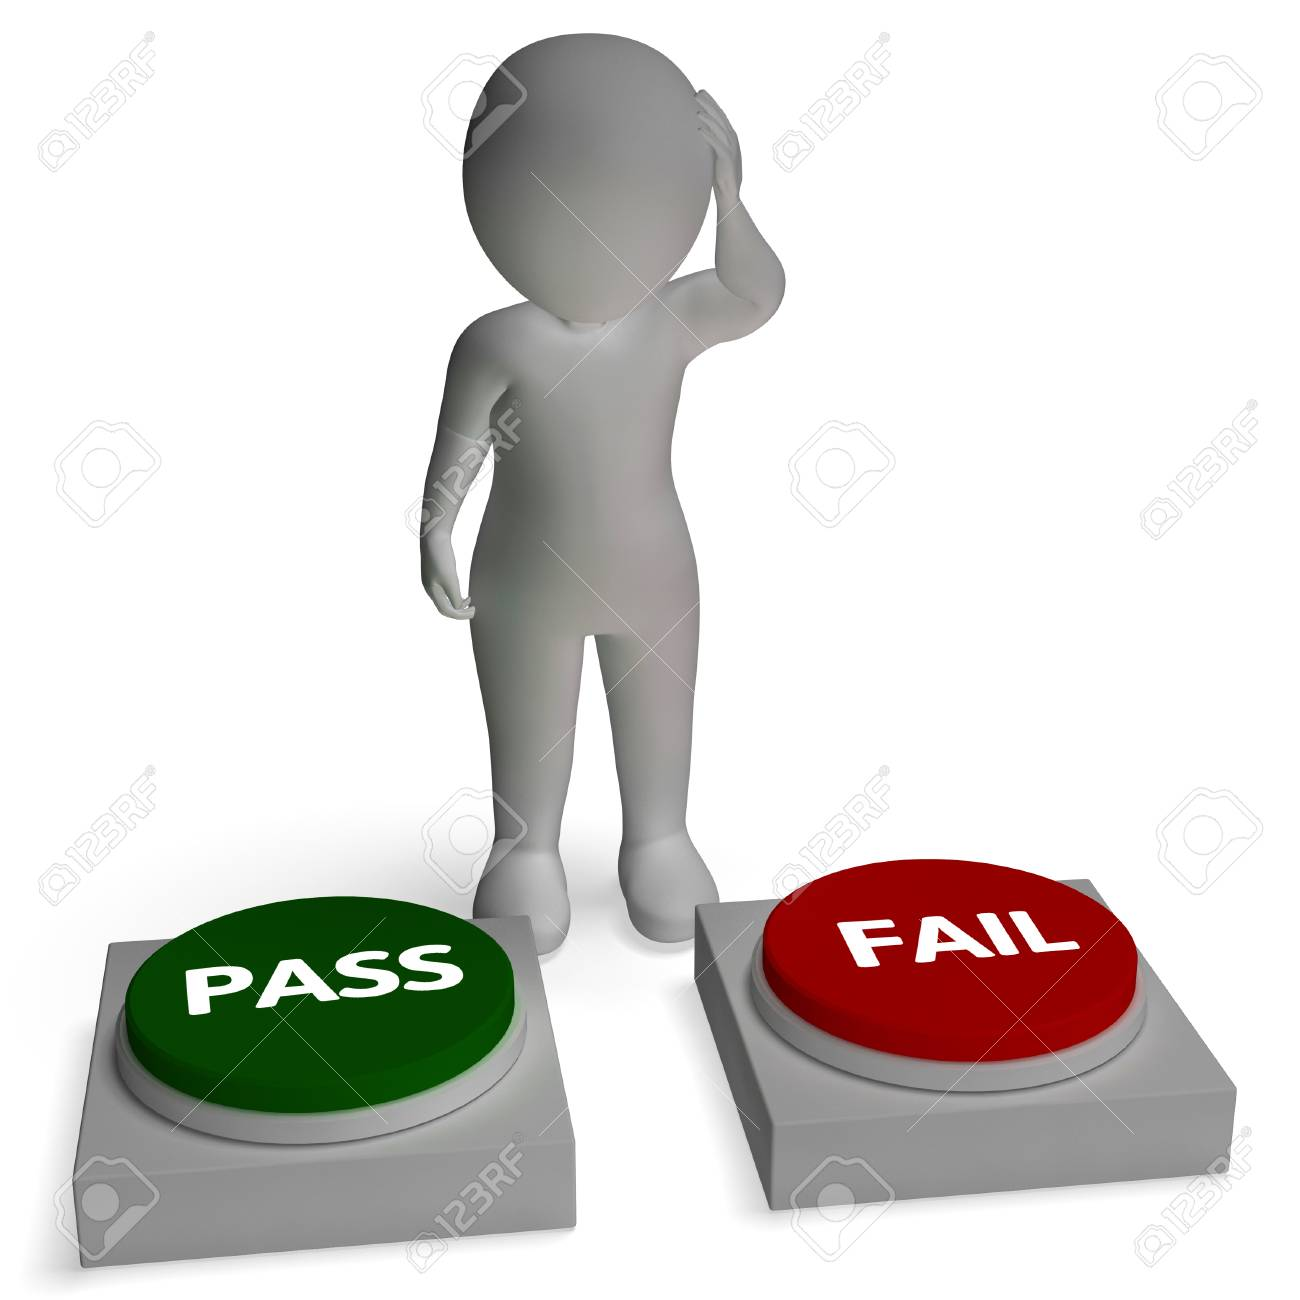 Pass Fail Buttons Shows Passing Or Failure Stock Photo - 26064152